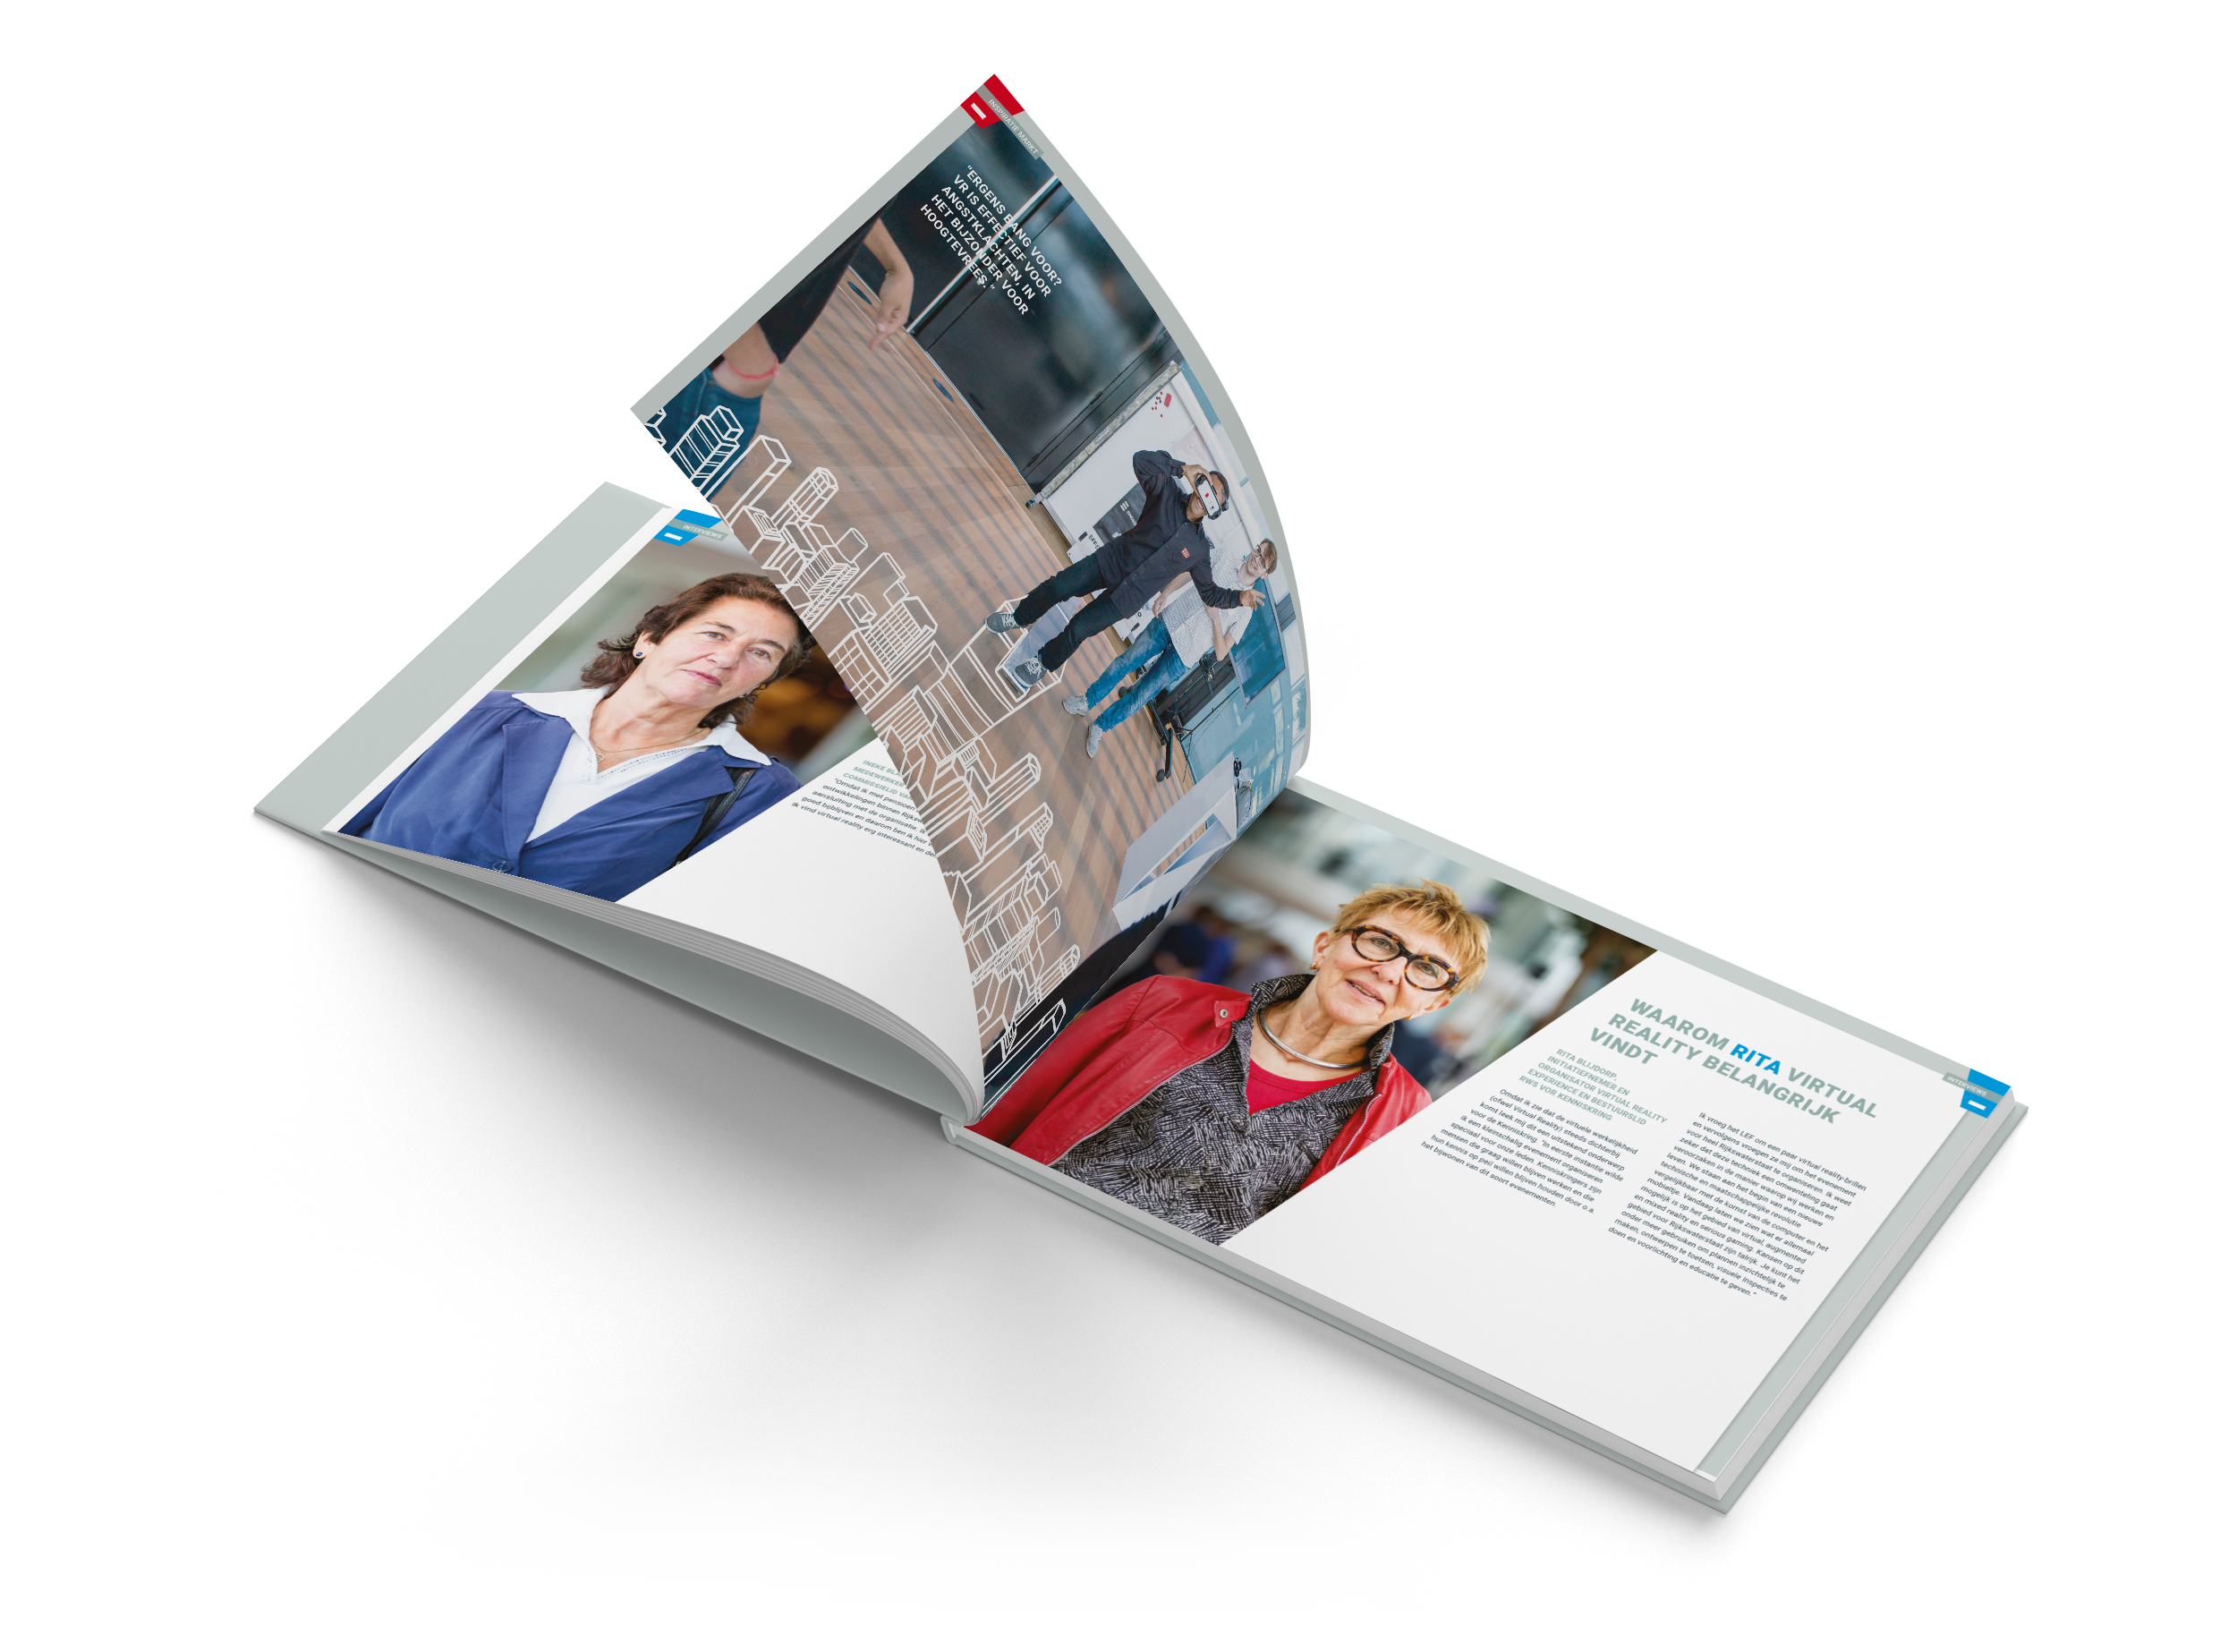 Magazine Rijkswaterstaat Virtual Reality